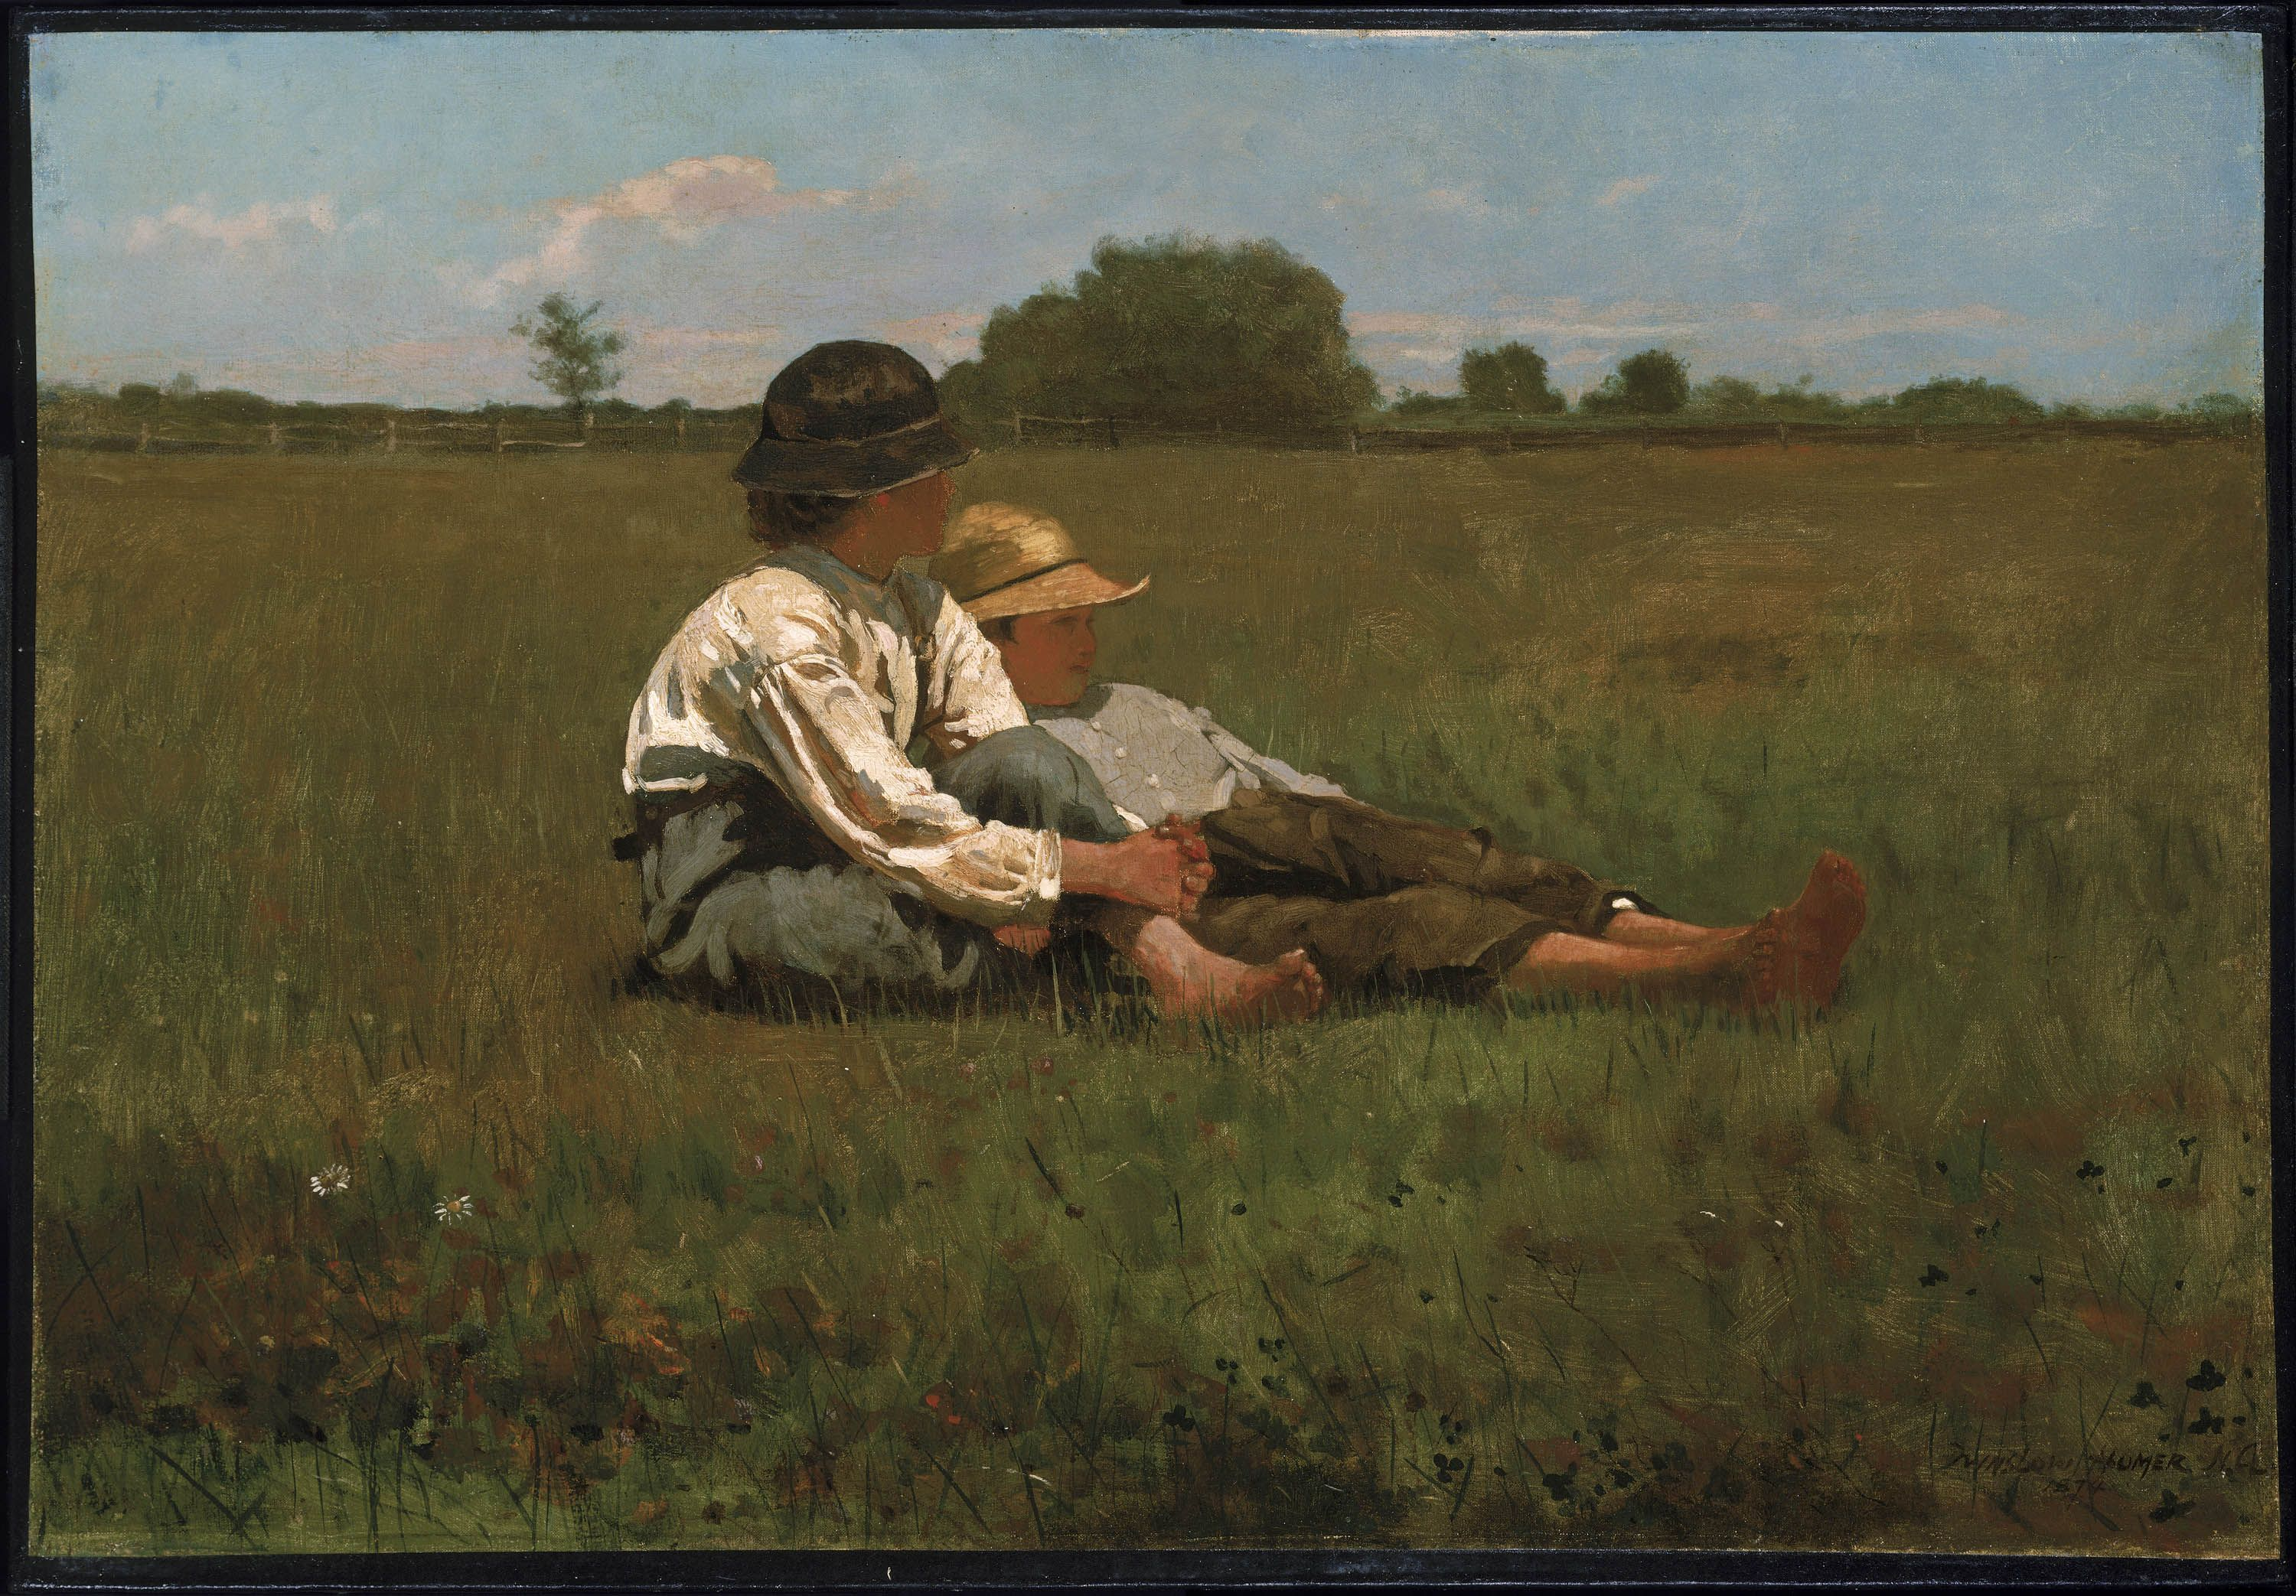 Museum of Fine Arts, Boston - Winslow Homer - 'Boys in the Pasture'